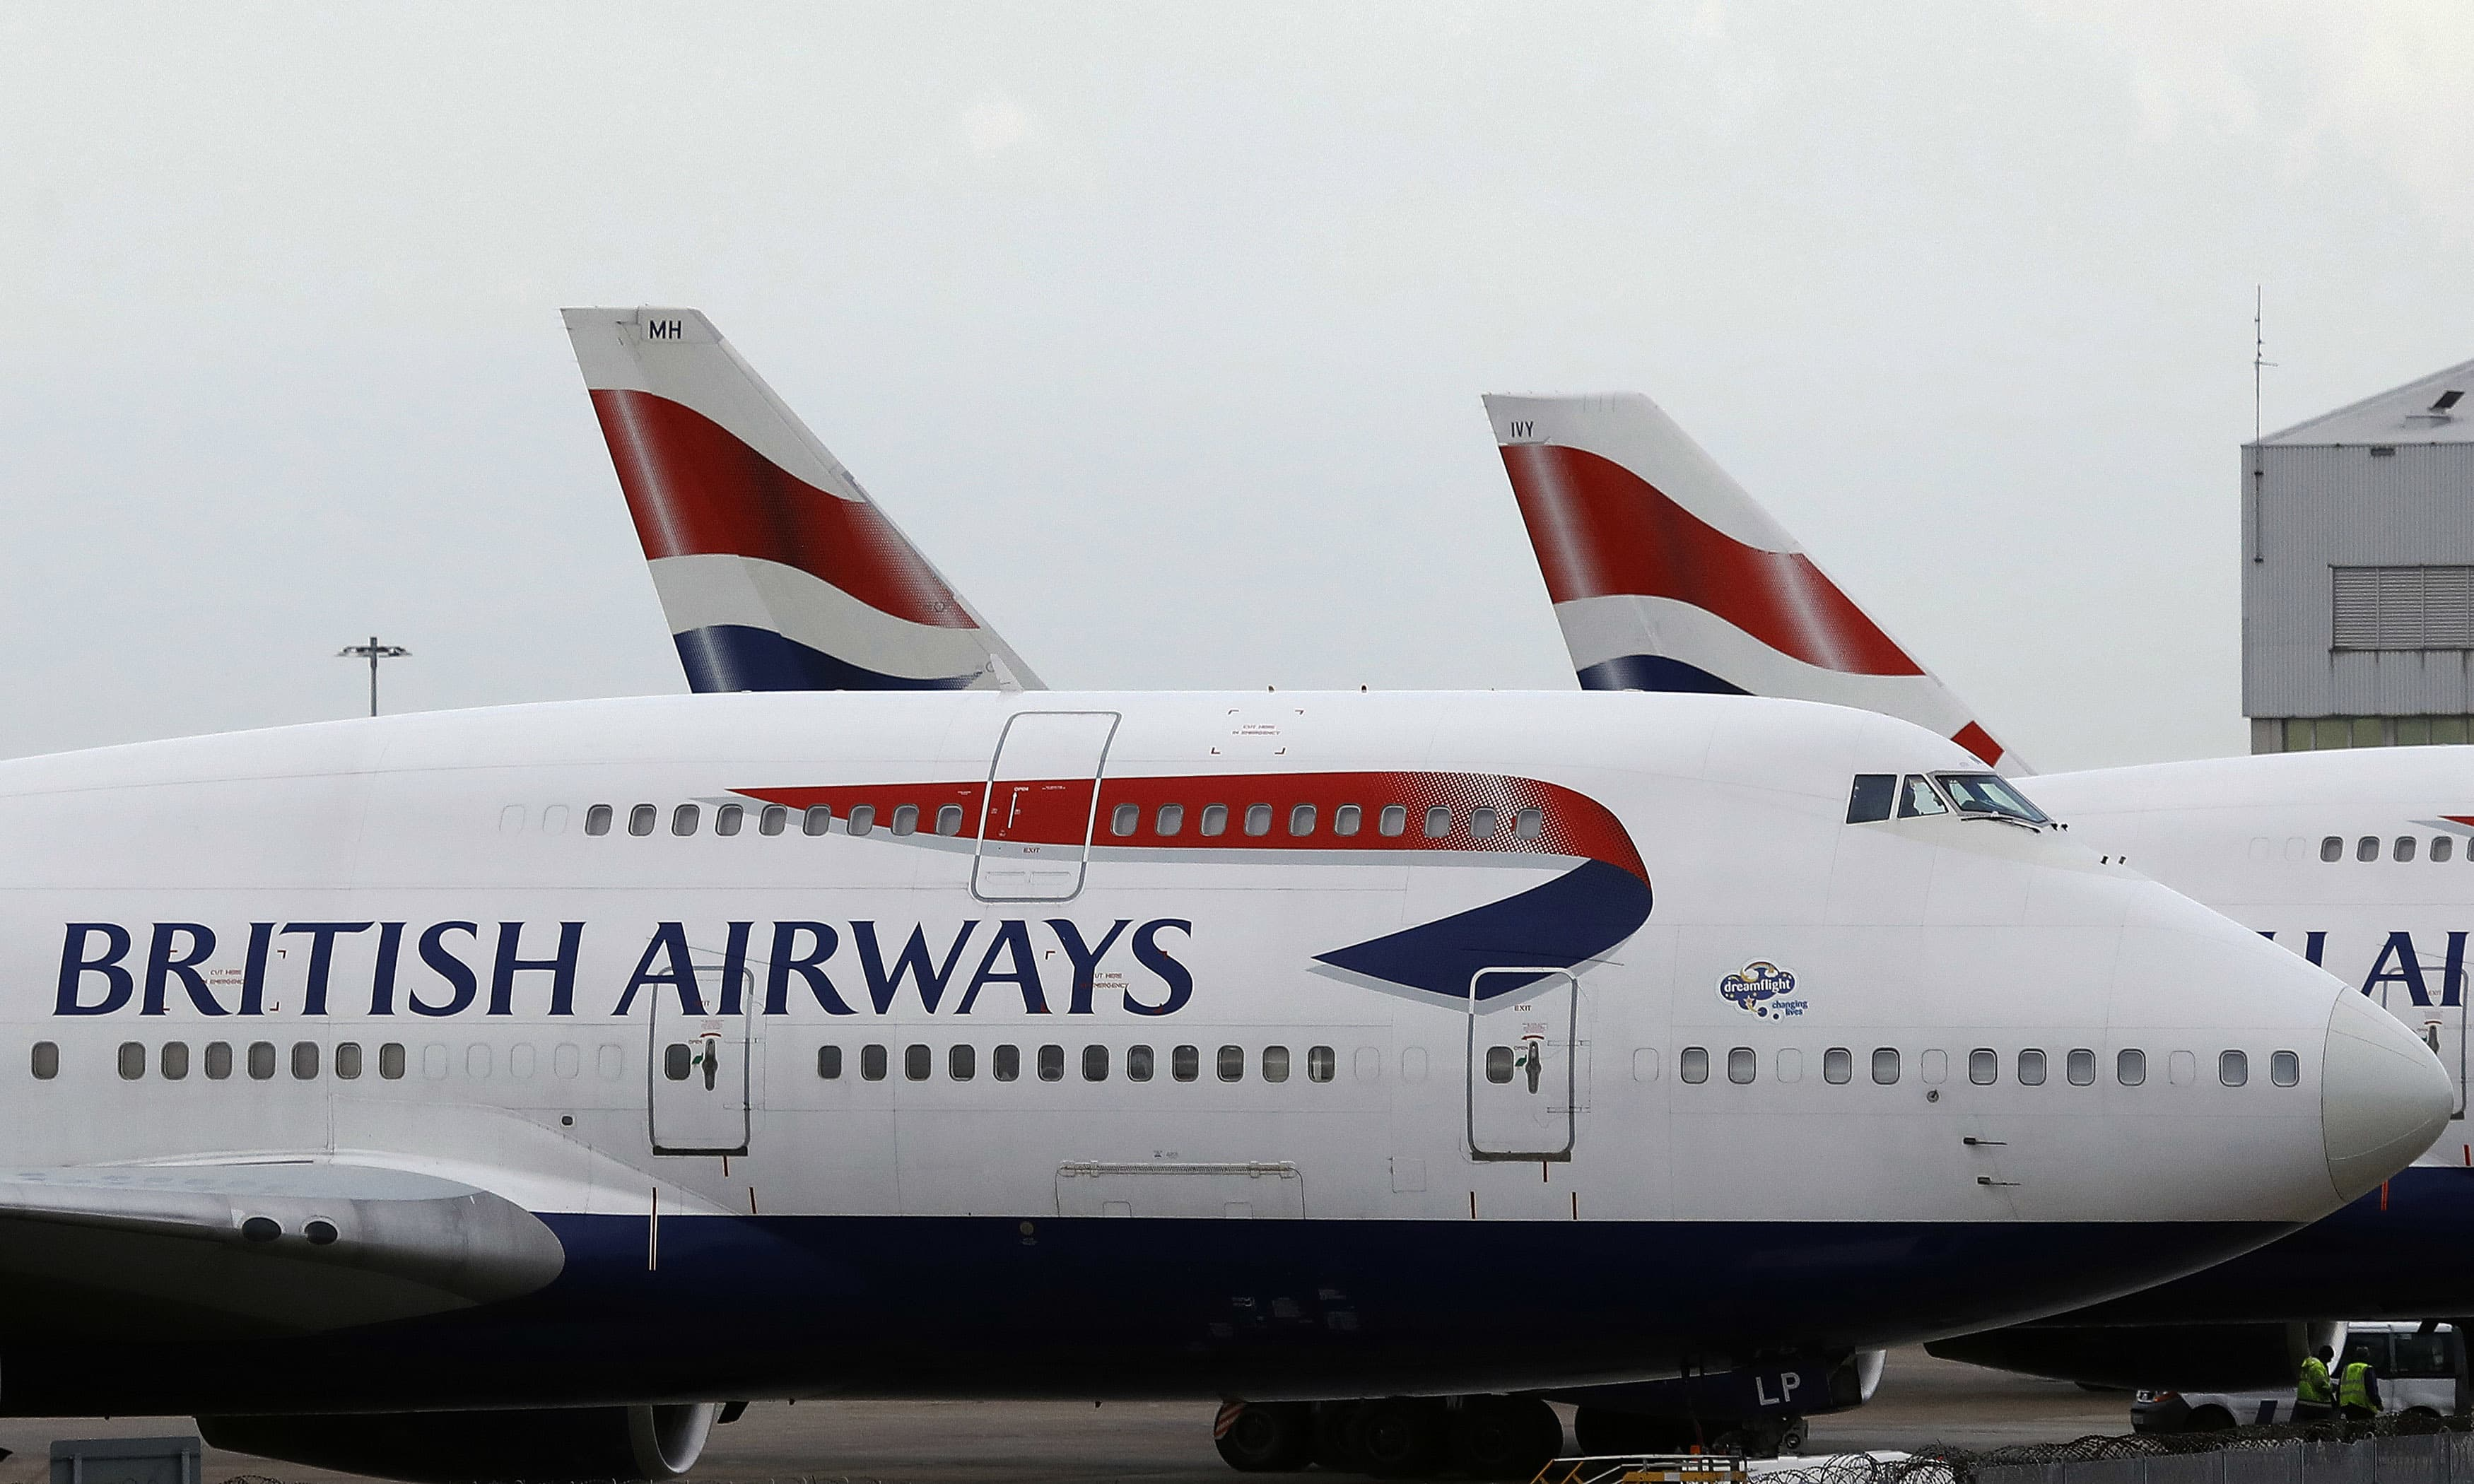 British Airways will resume flights to Pakistan in June 2019, a decade after it suspended operations following bombing on the Marriott Hotel in Islamabad that killed dozens, an official of British Airways said in a statement. —AP